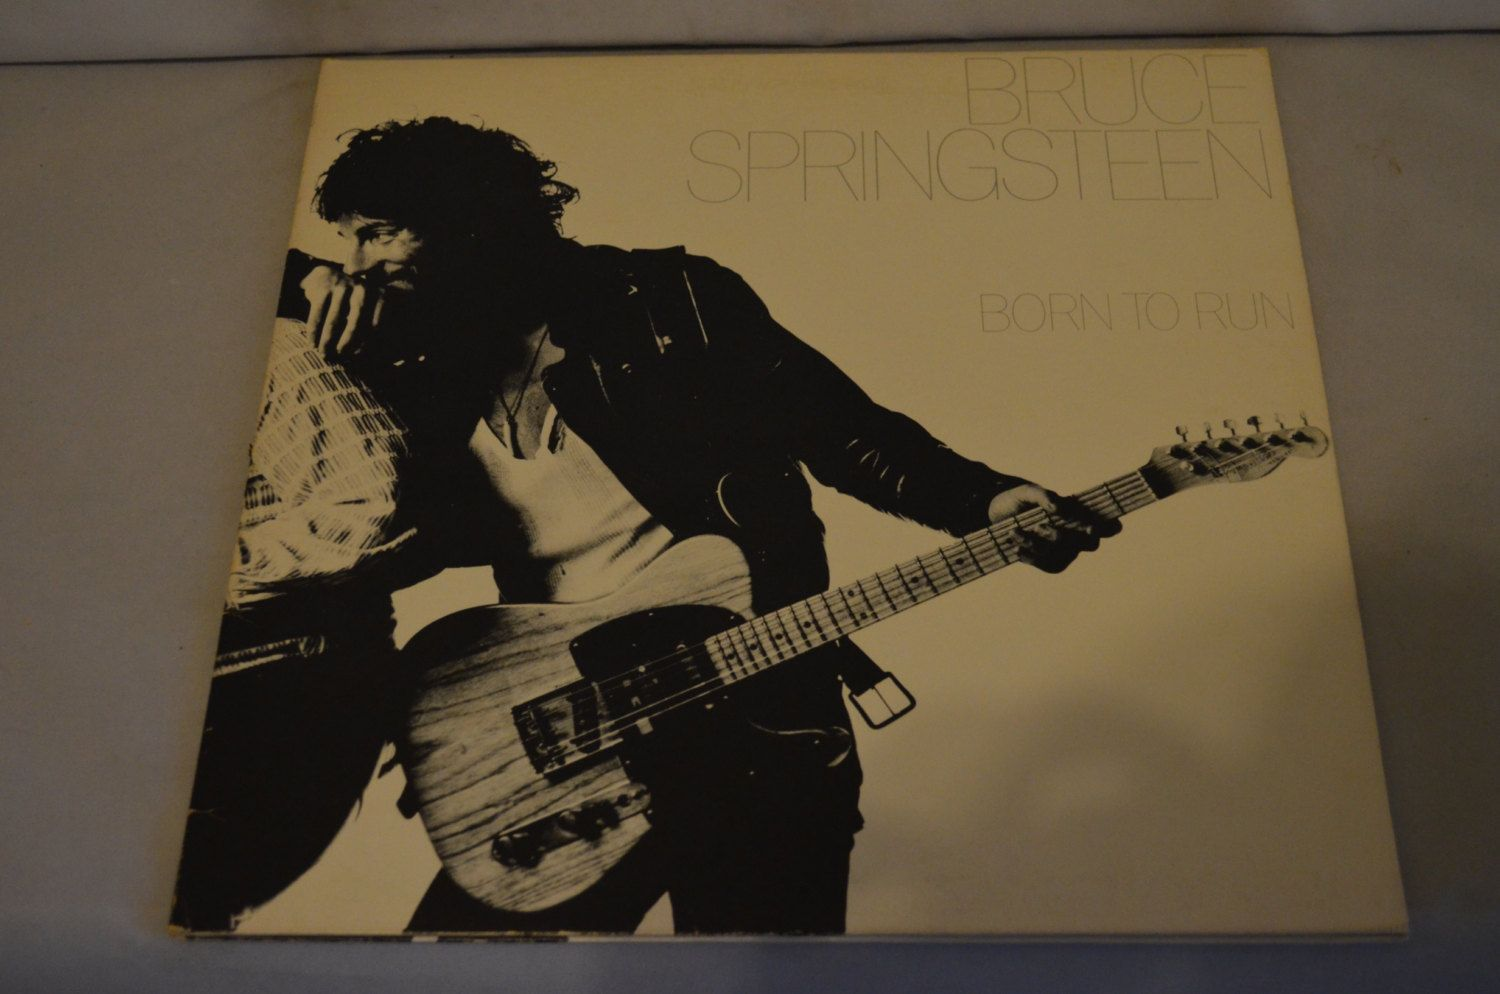 Vintage Gatefold Record Bruce Springsteen Born To Run Album Jc 33795 By Floridafinders On Etsy Born To Run Bruce Springsteen Records